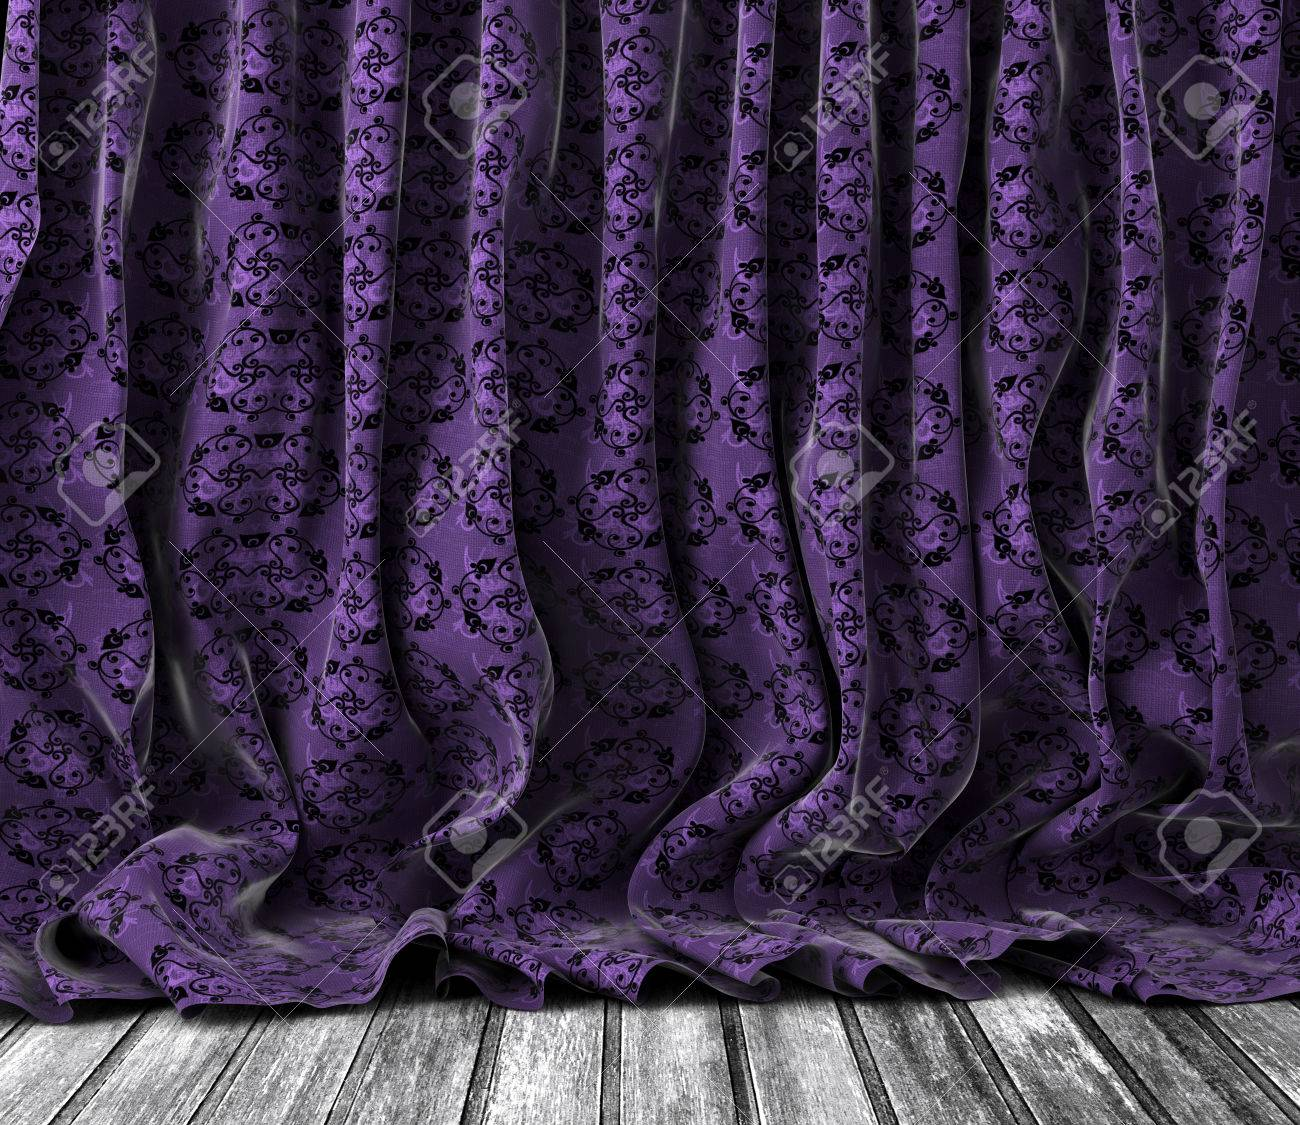 Curtains texture - Background Old Vintage Floral Curtains In Purple Toned Wood Floor Texture Stock Photo